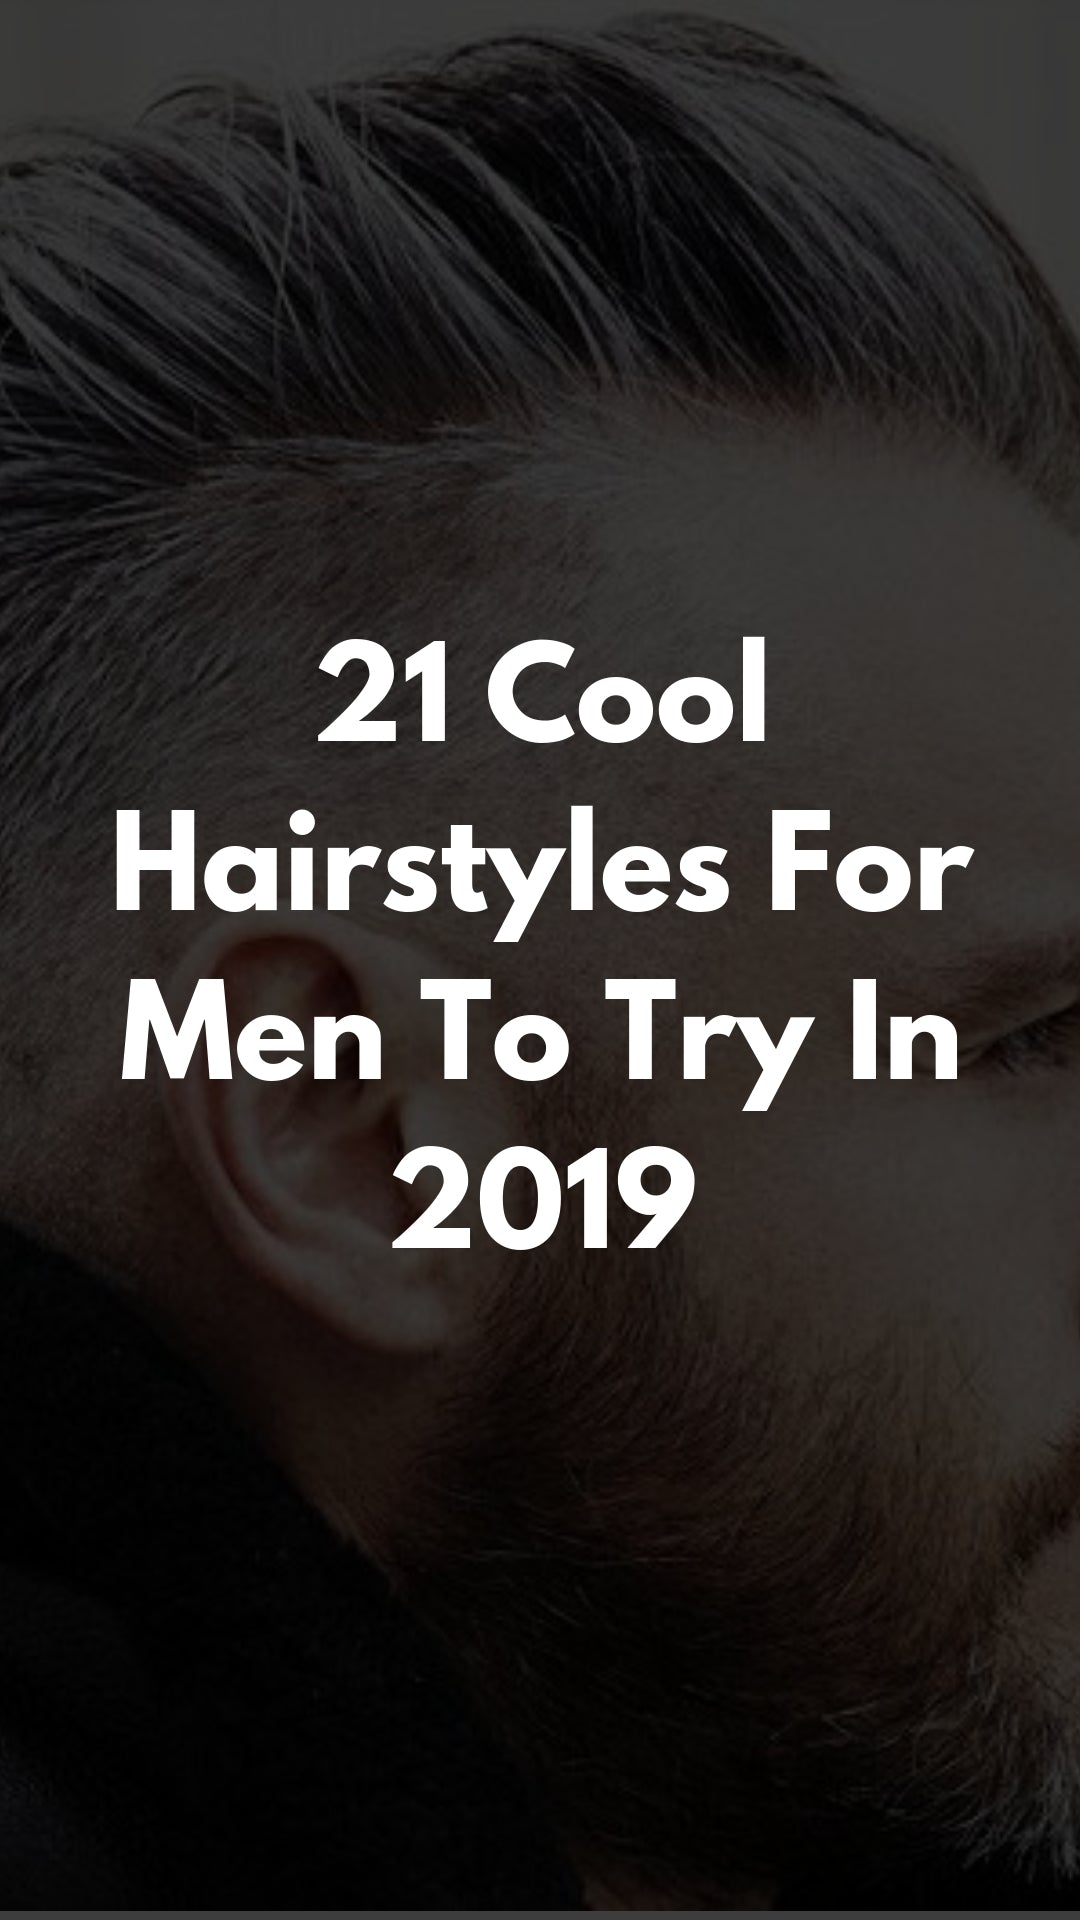 21 Cool Hairstyles For Men To Try In 2019 #mens #hairstyles #2019